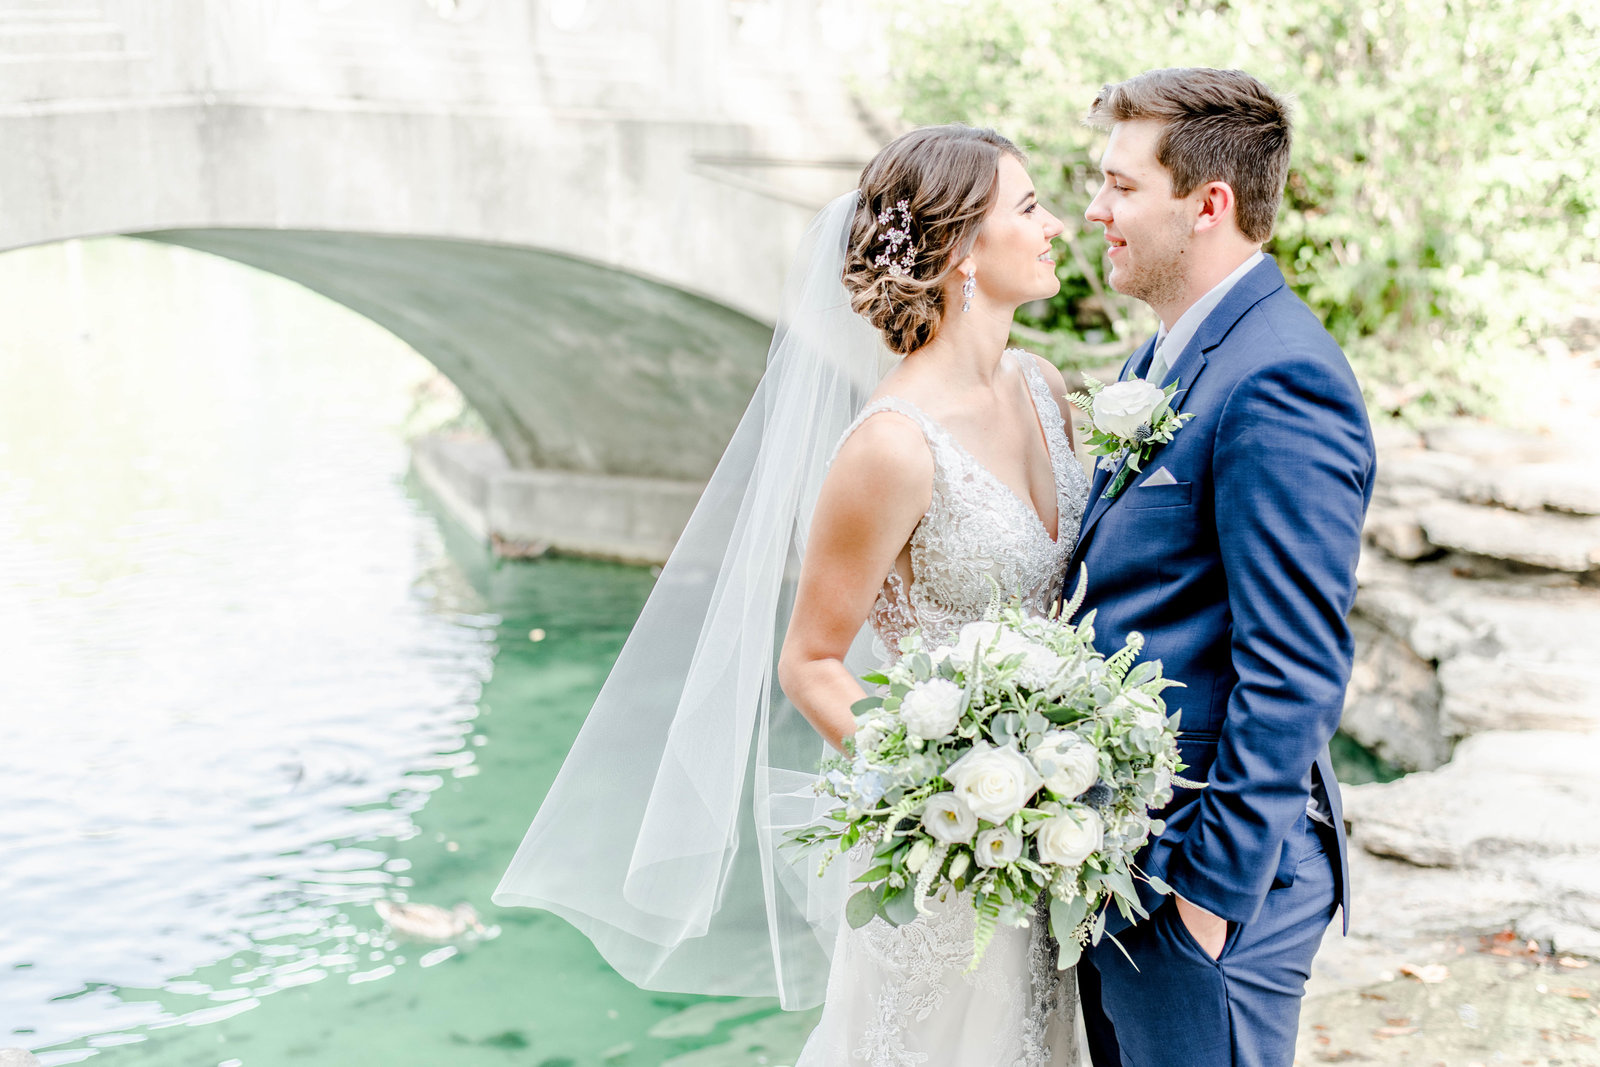 Cassidy Alane Photography-Liz & Gabe Van Dyke - Dayton-Cincinnati Ohio & Covington Kentucky Wedding Photography21